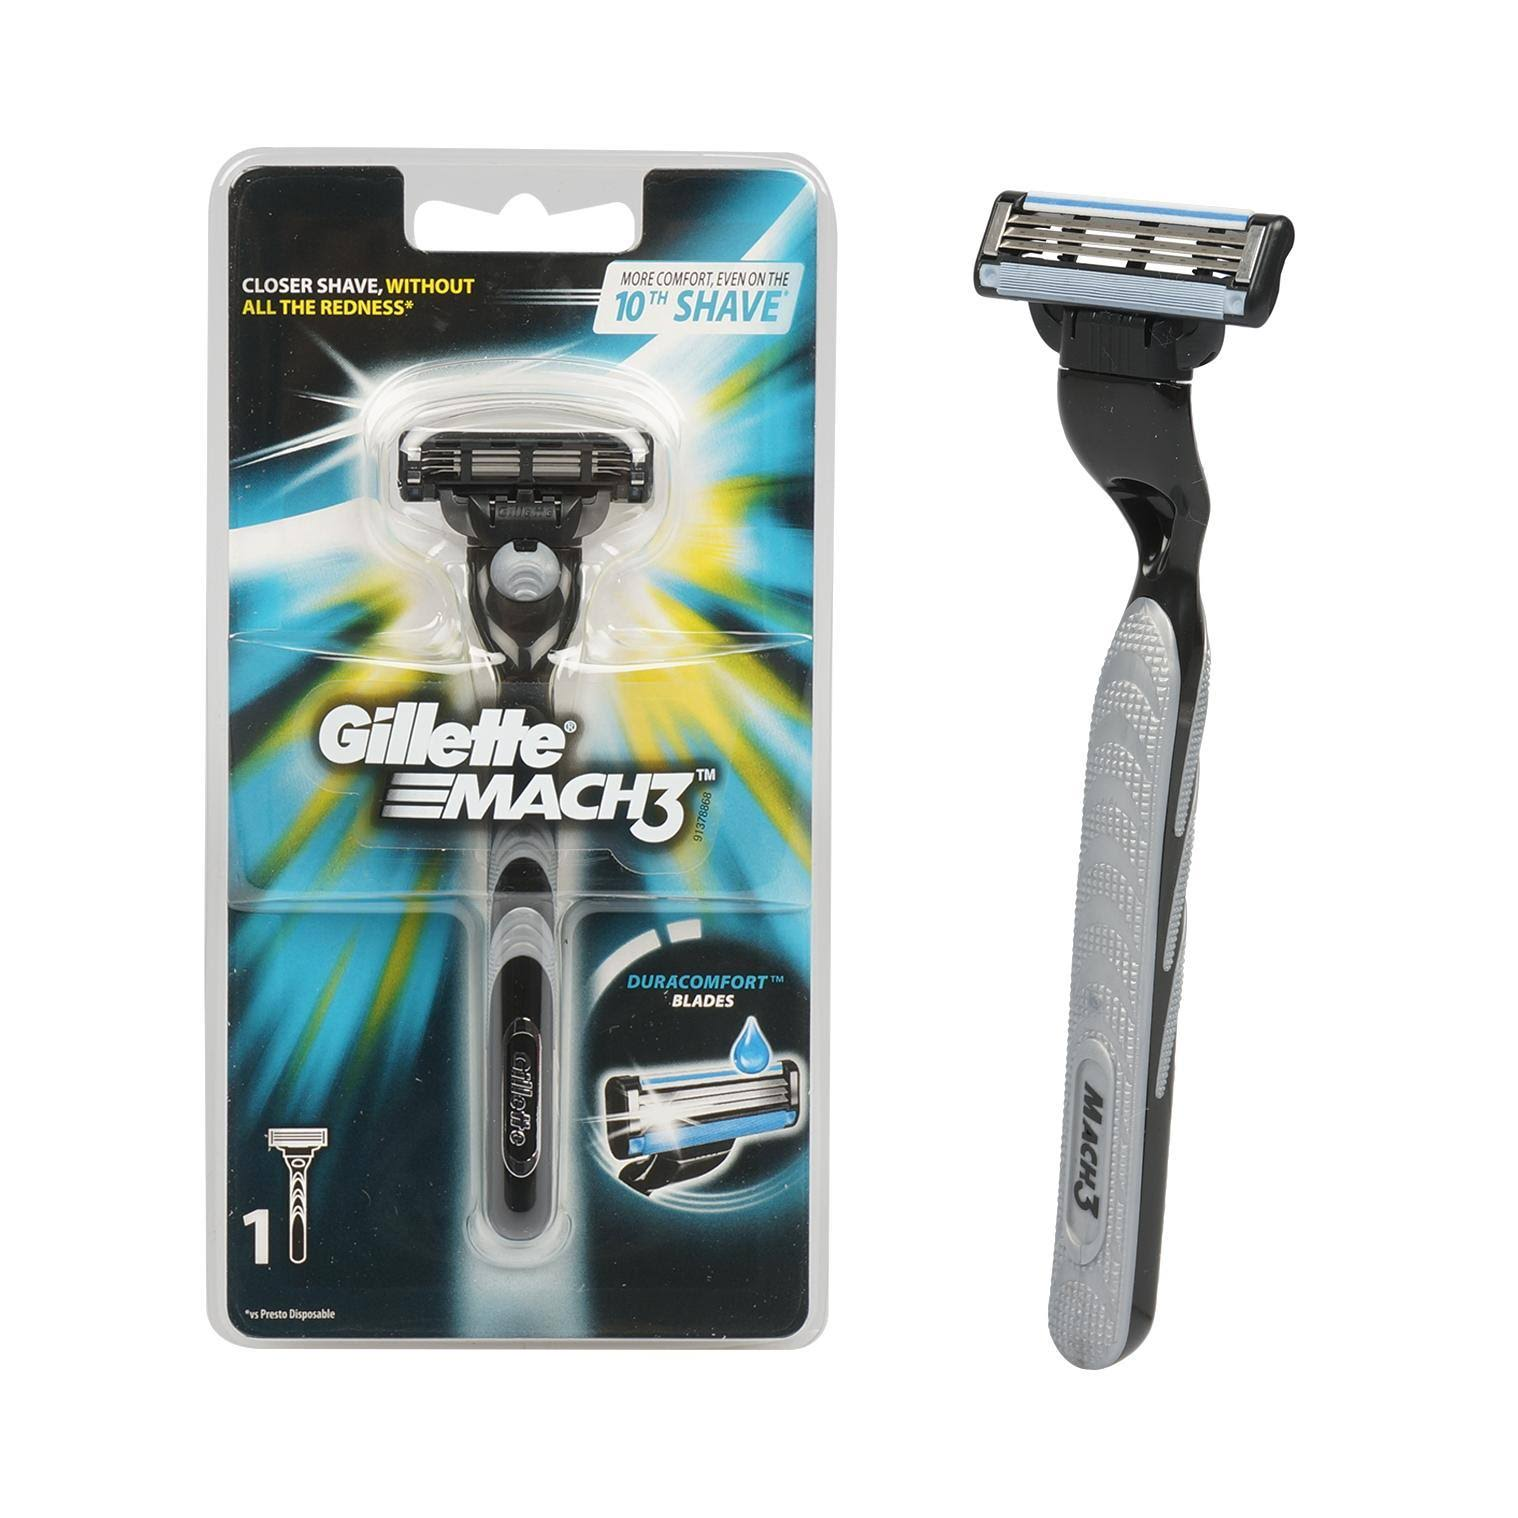 Gillette Mach 3 Manual Shaving Razor